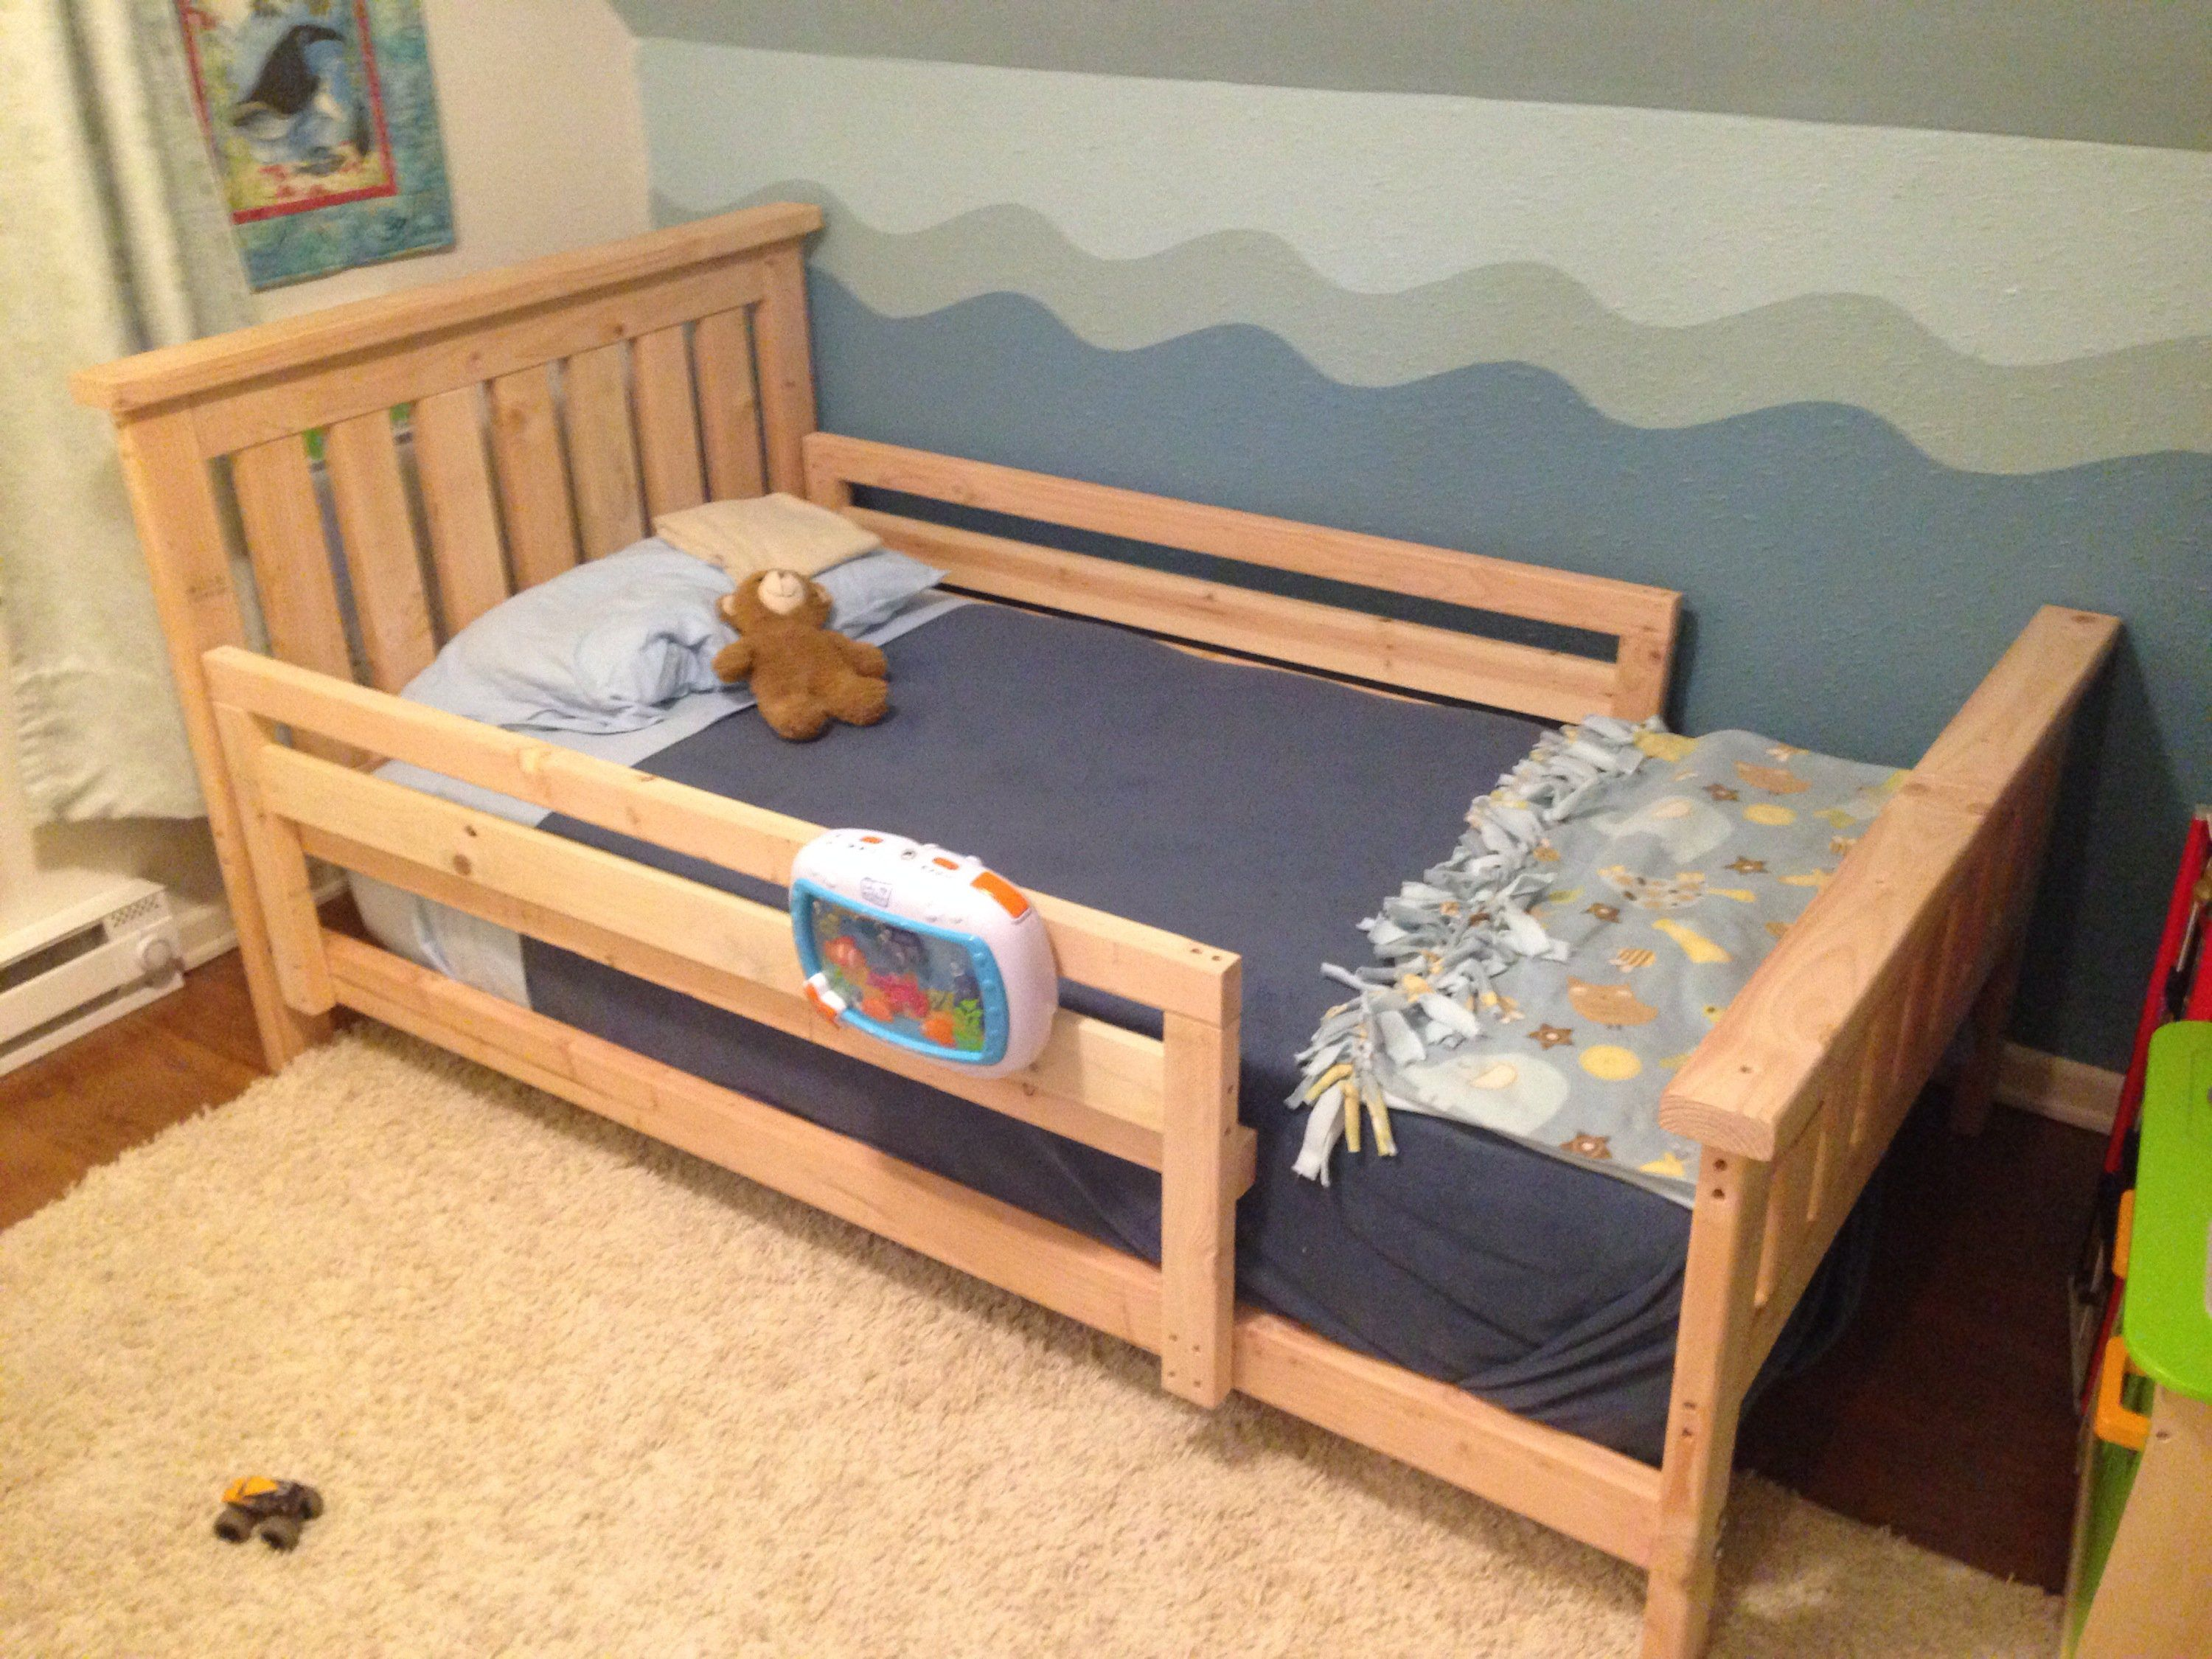 Diy 2x4 Bed Bebos Shared Room Pinterest Toddler Bed